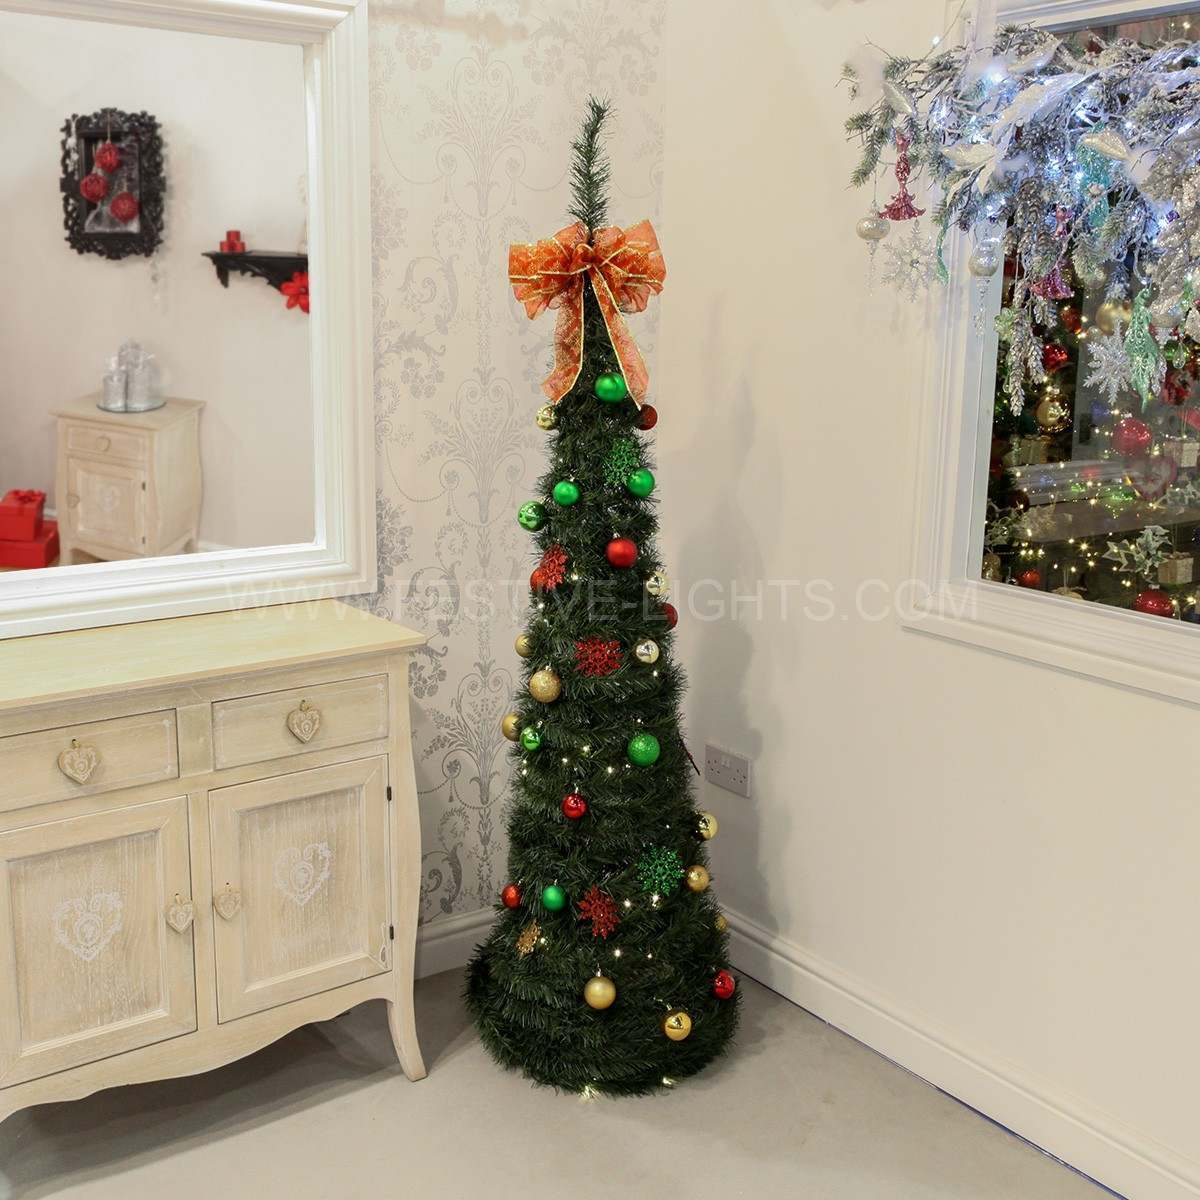 18m silver pre lit pop up christmas tree with decorations. Black Bedroom Furniture Sets. Home Design Ideas